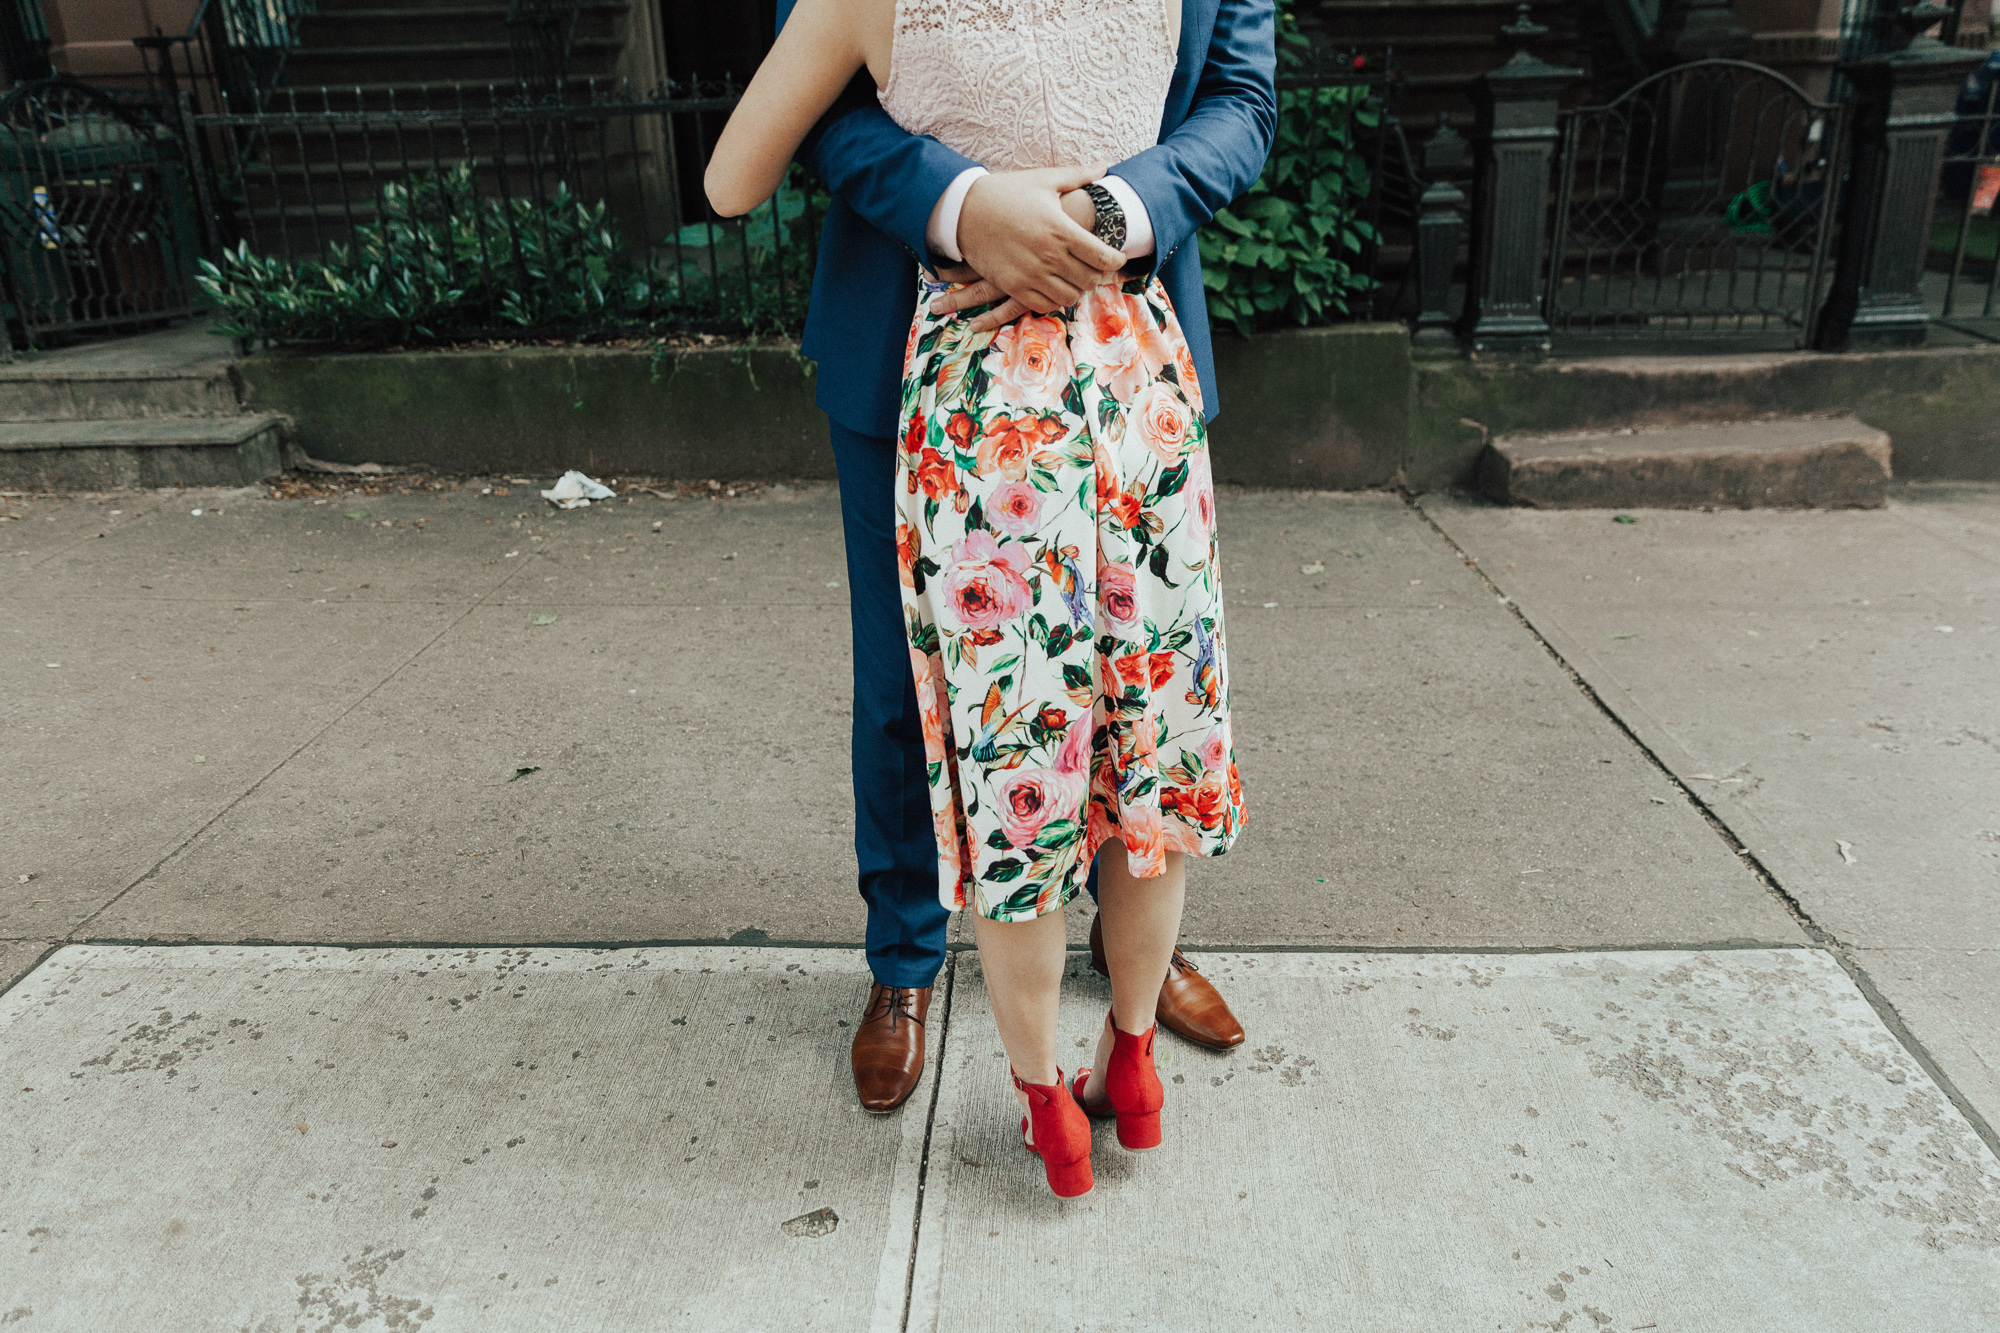 brooklyn_nyc_engagement_photography-18-of-83.jpg